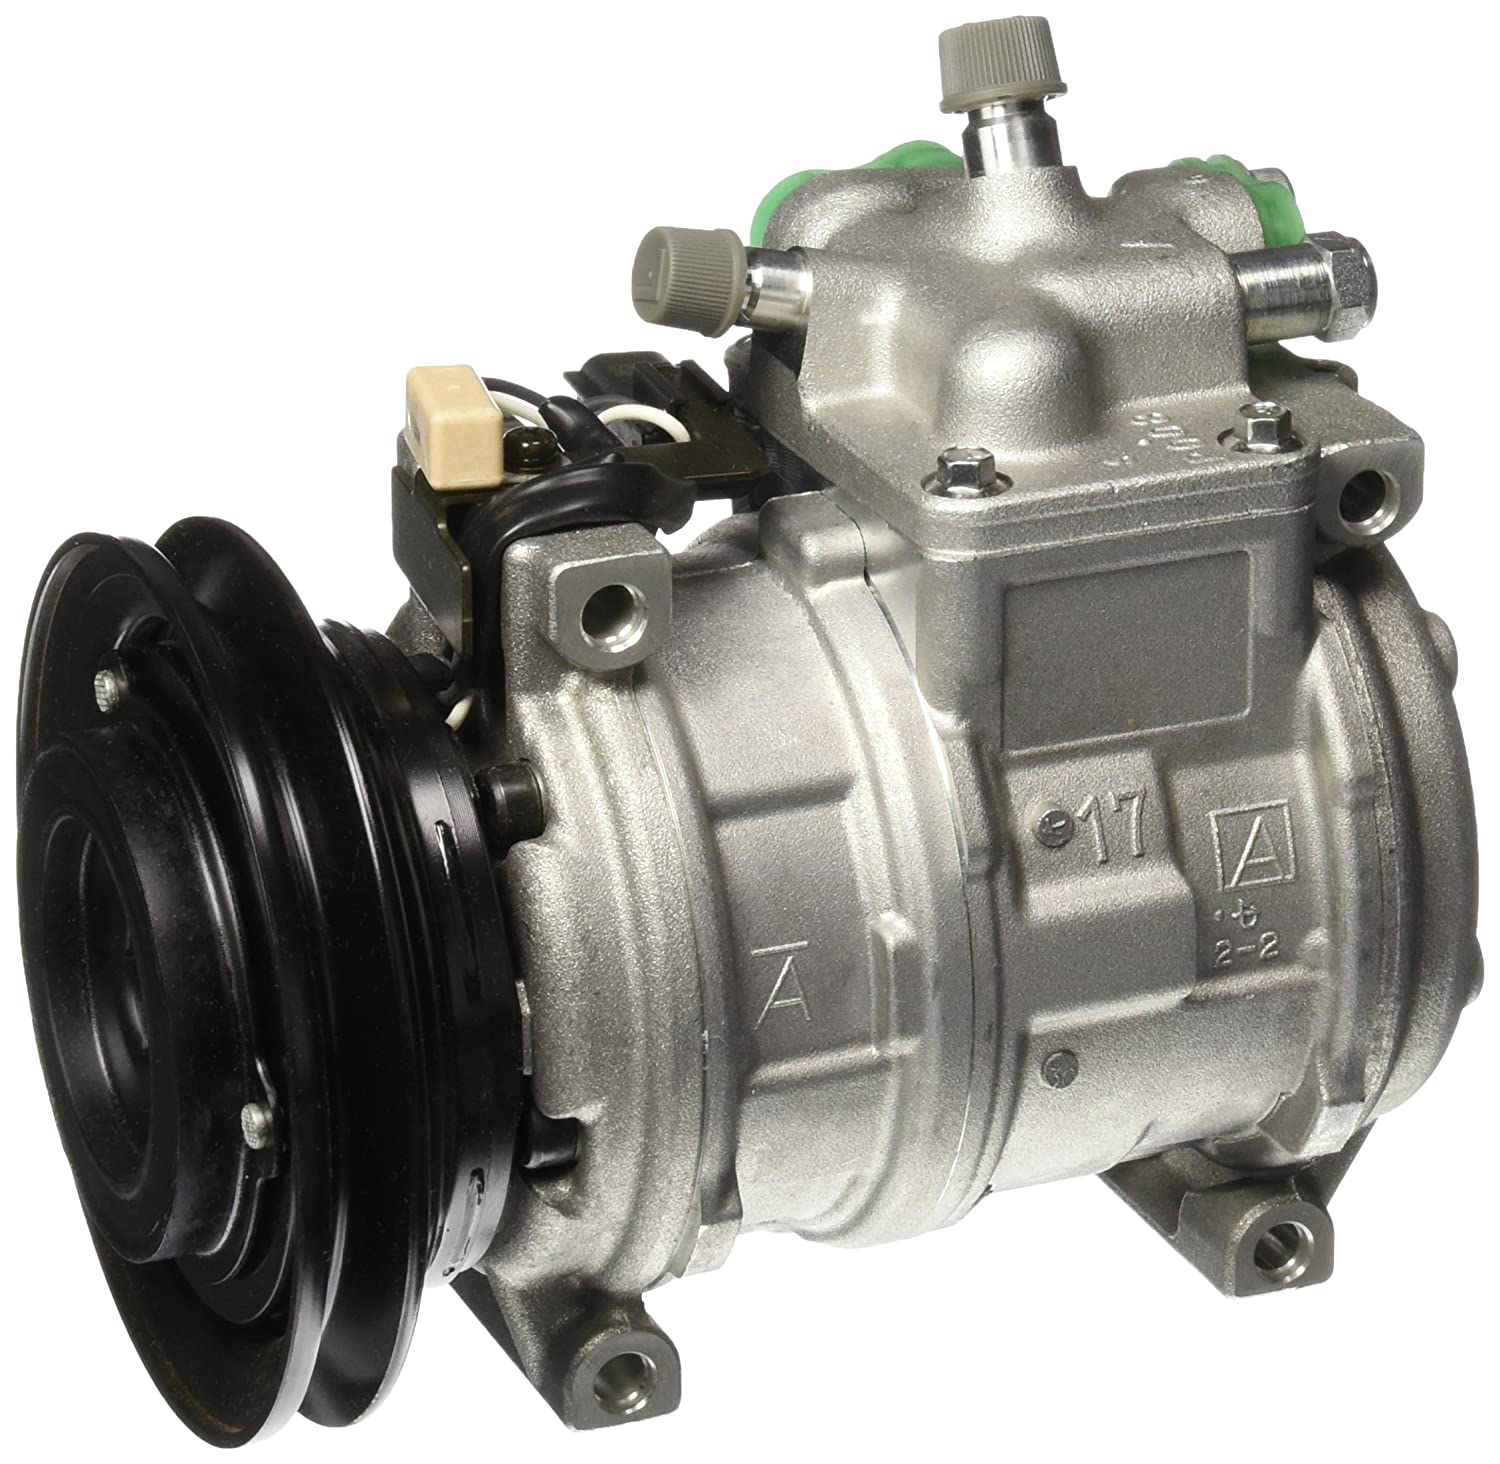 Denso 471-0357 New Compressor with Clutch 471-0357-DEN